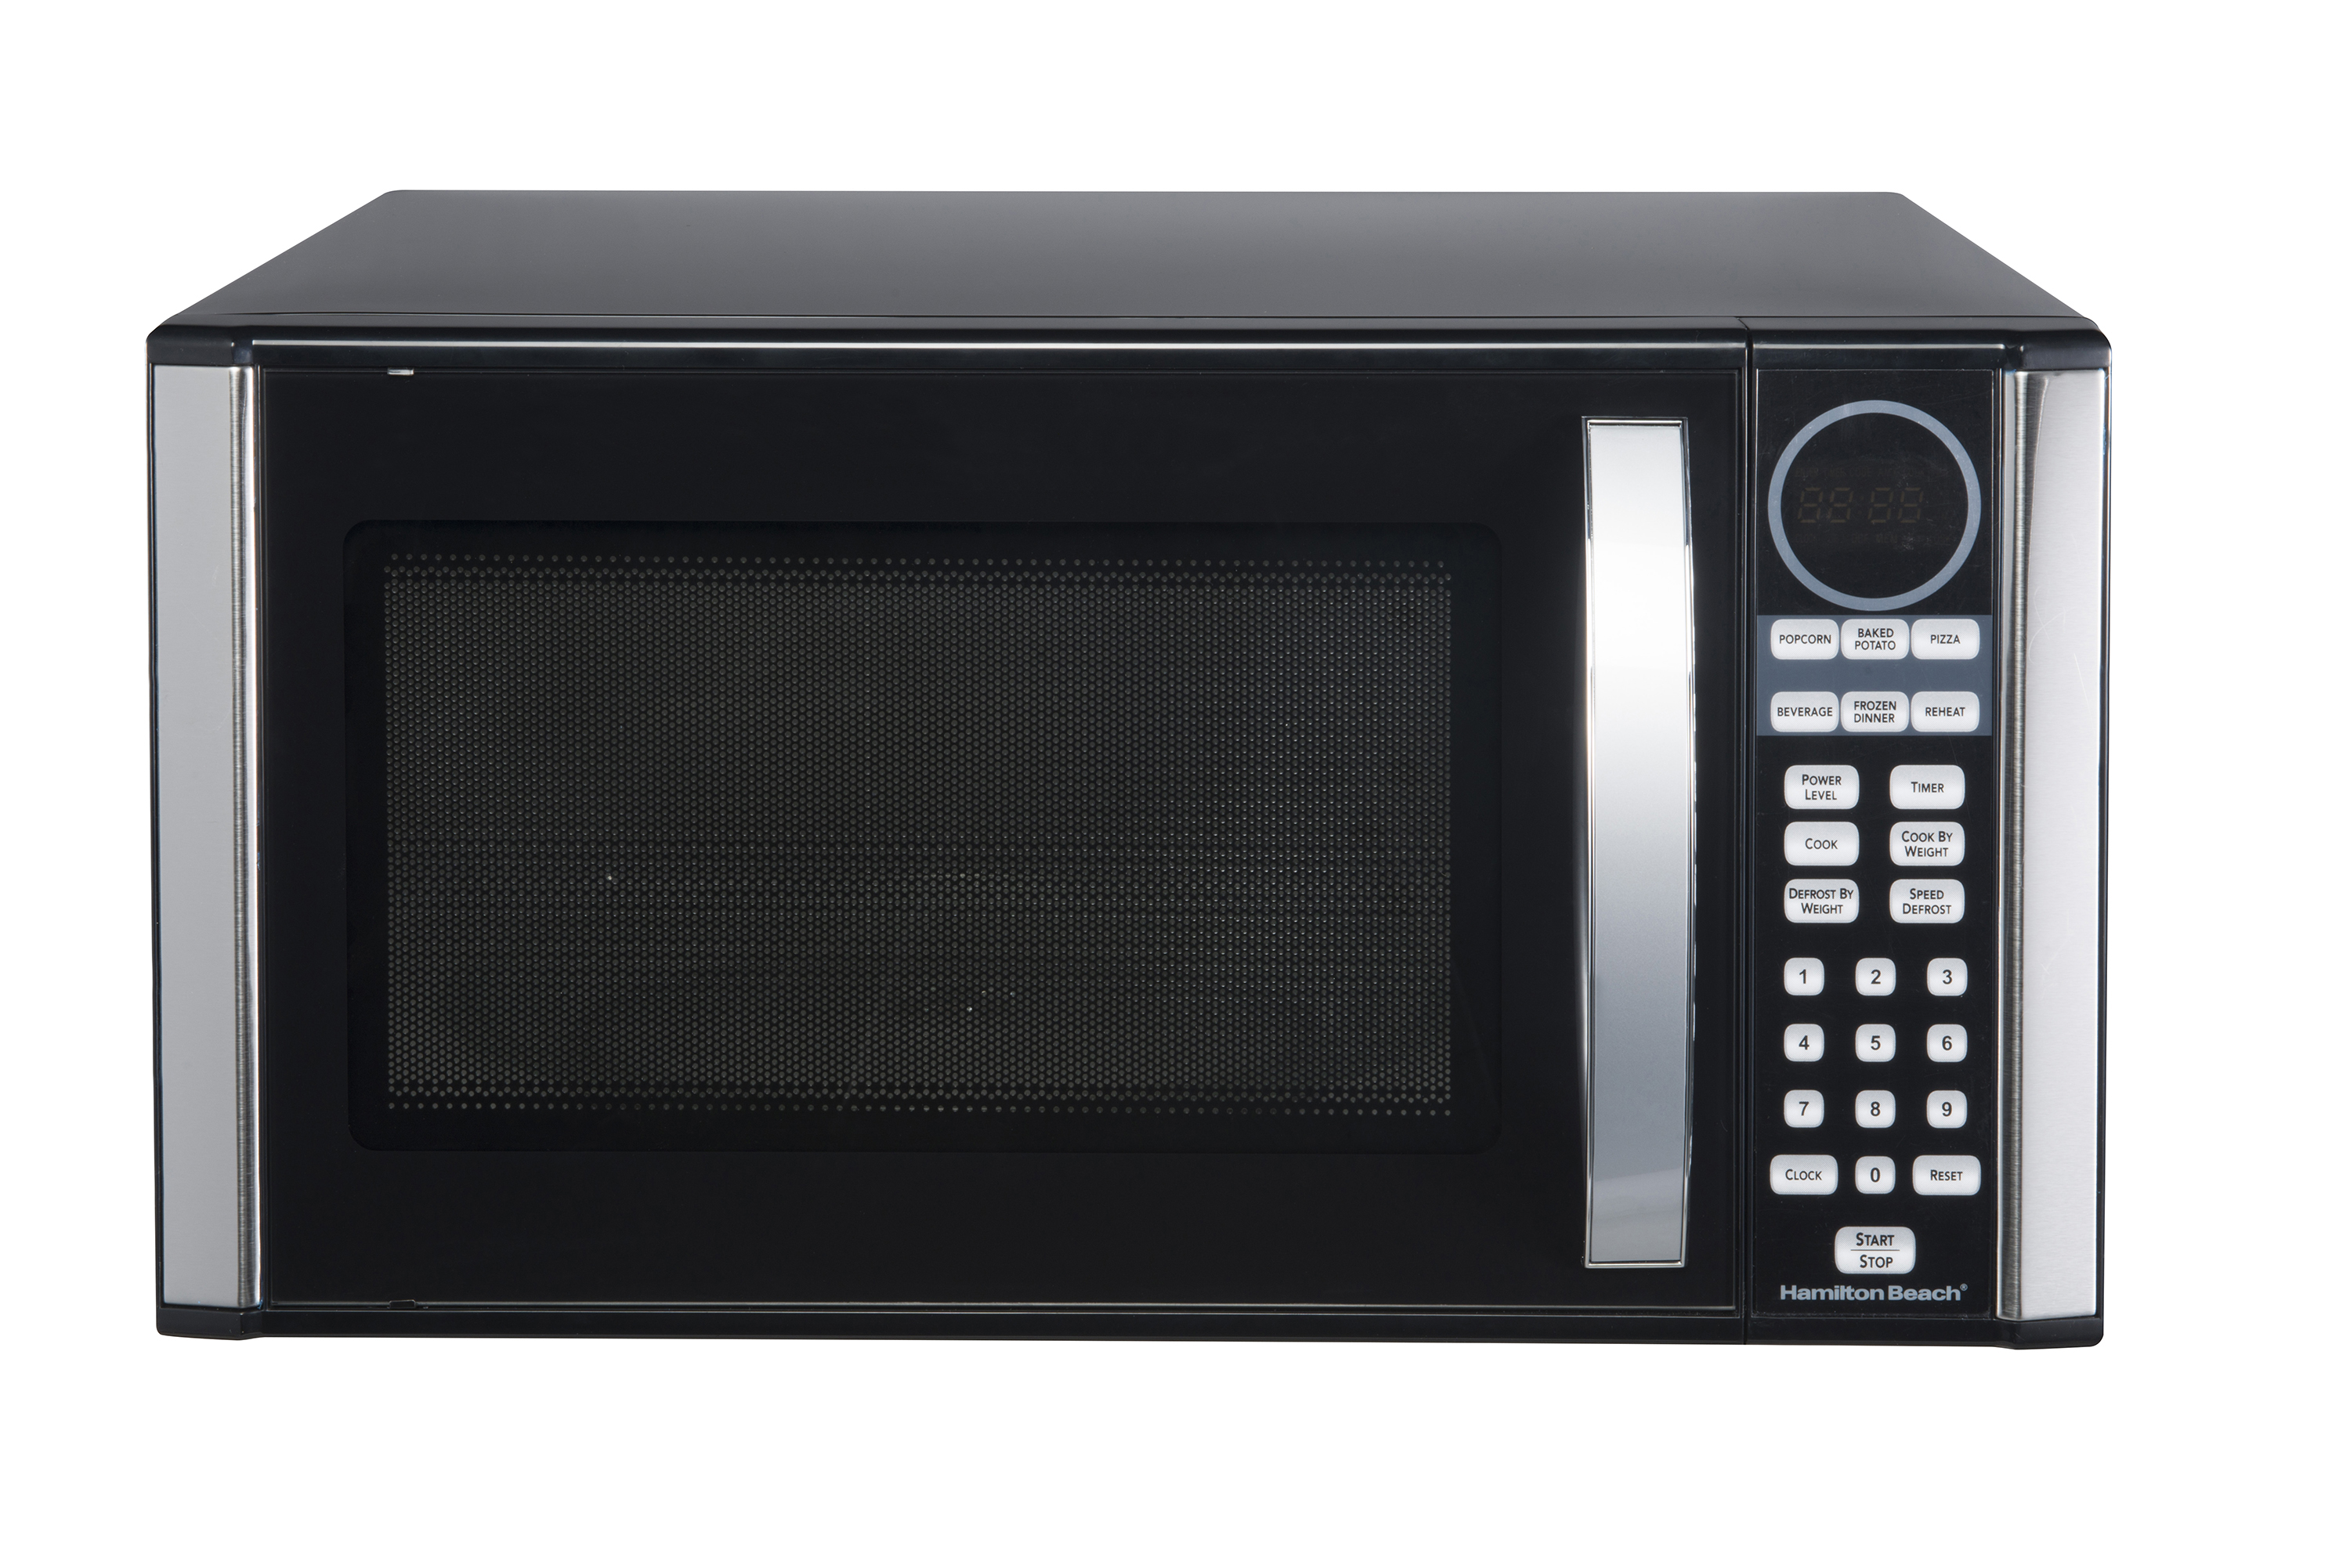 Microwave Oven With Grill Small Portable Stainless Steel 1000w Black